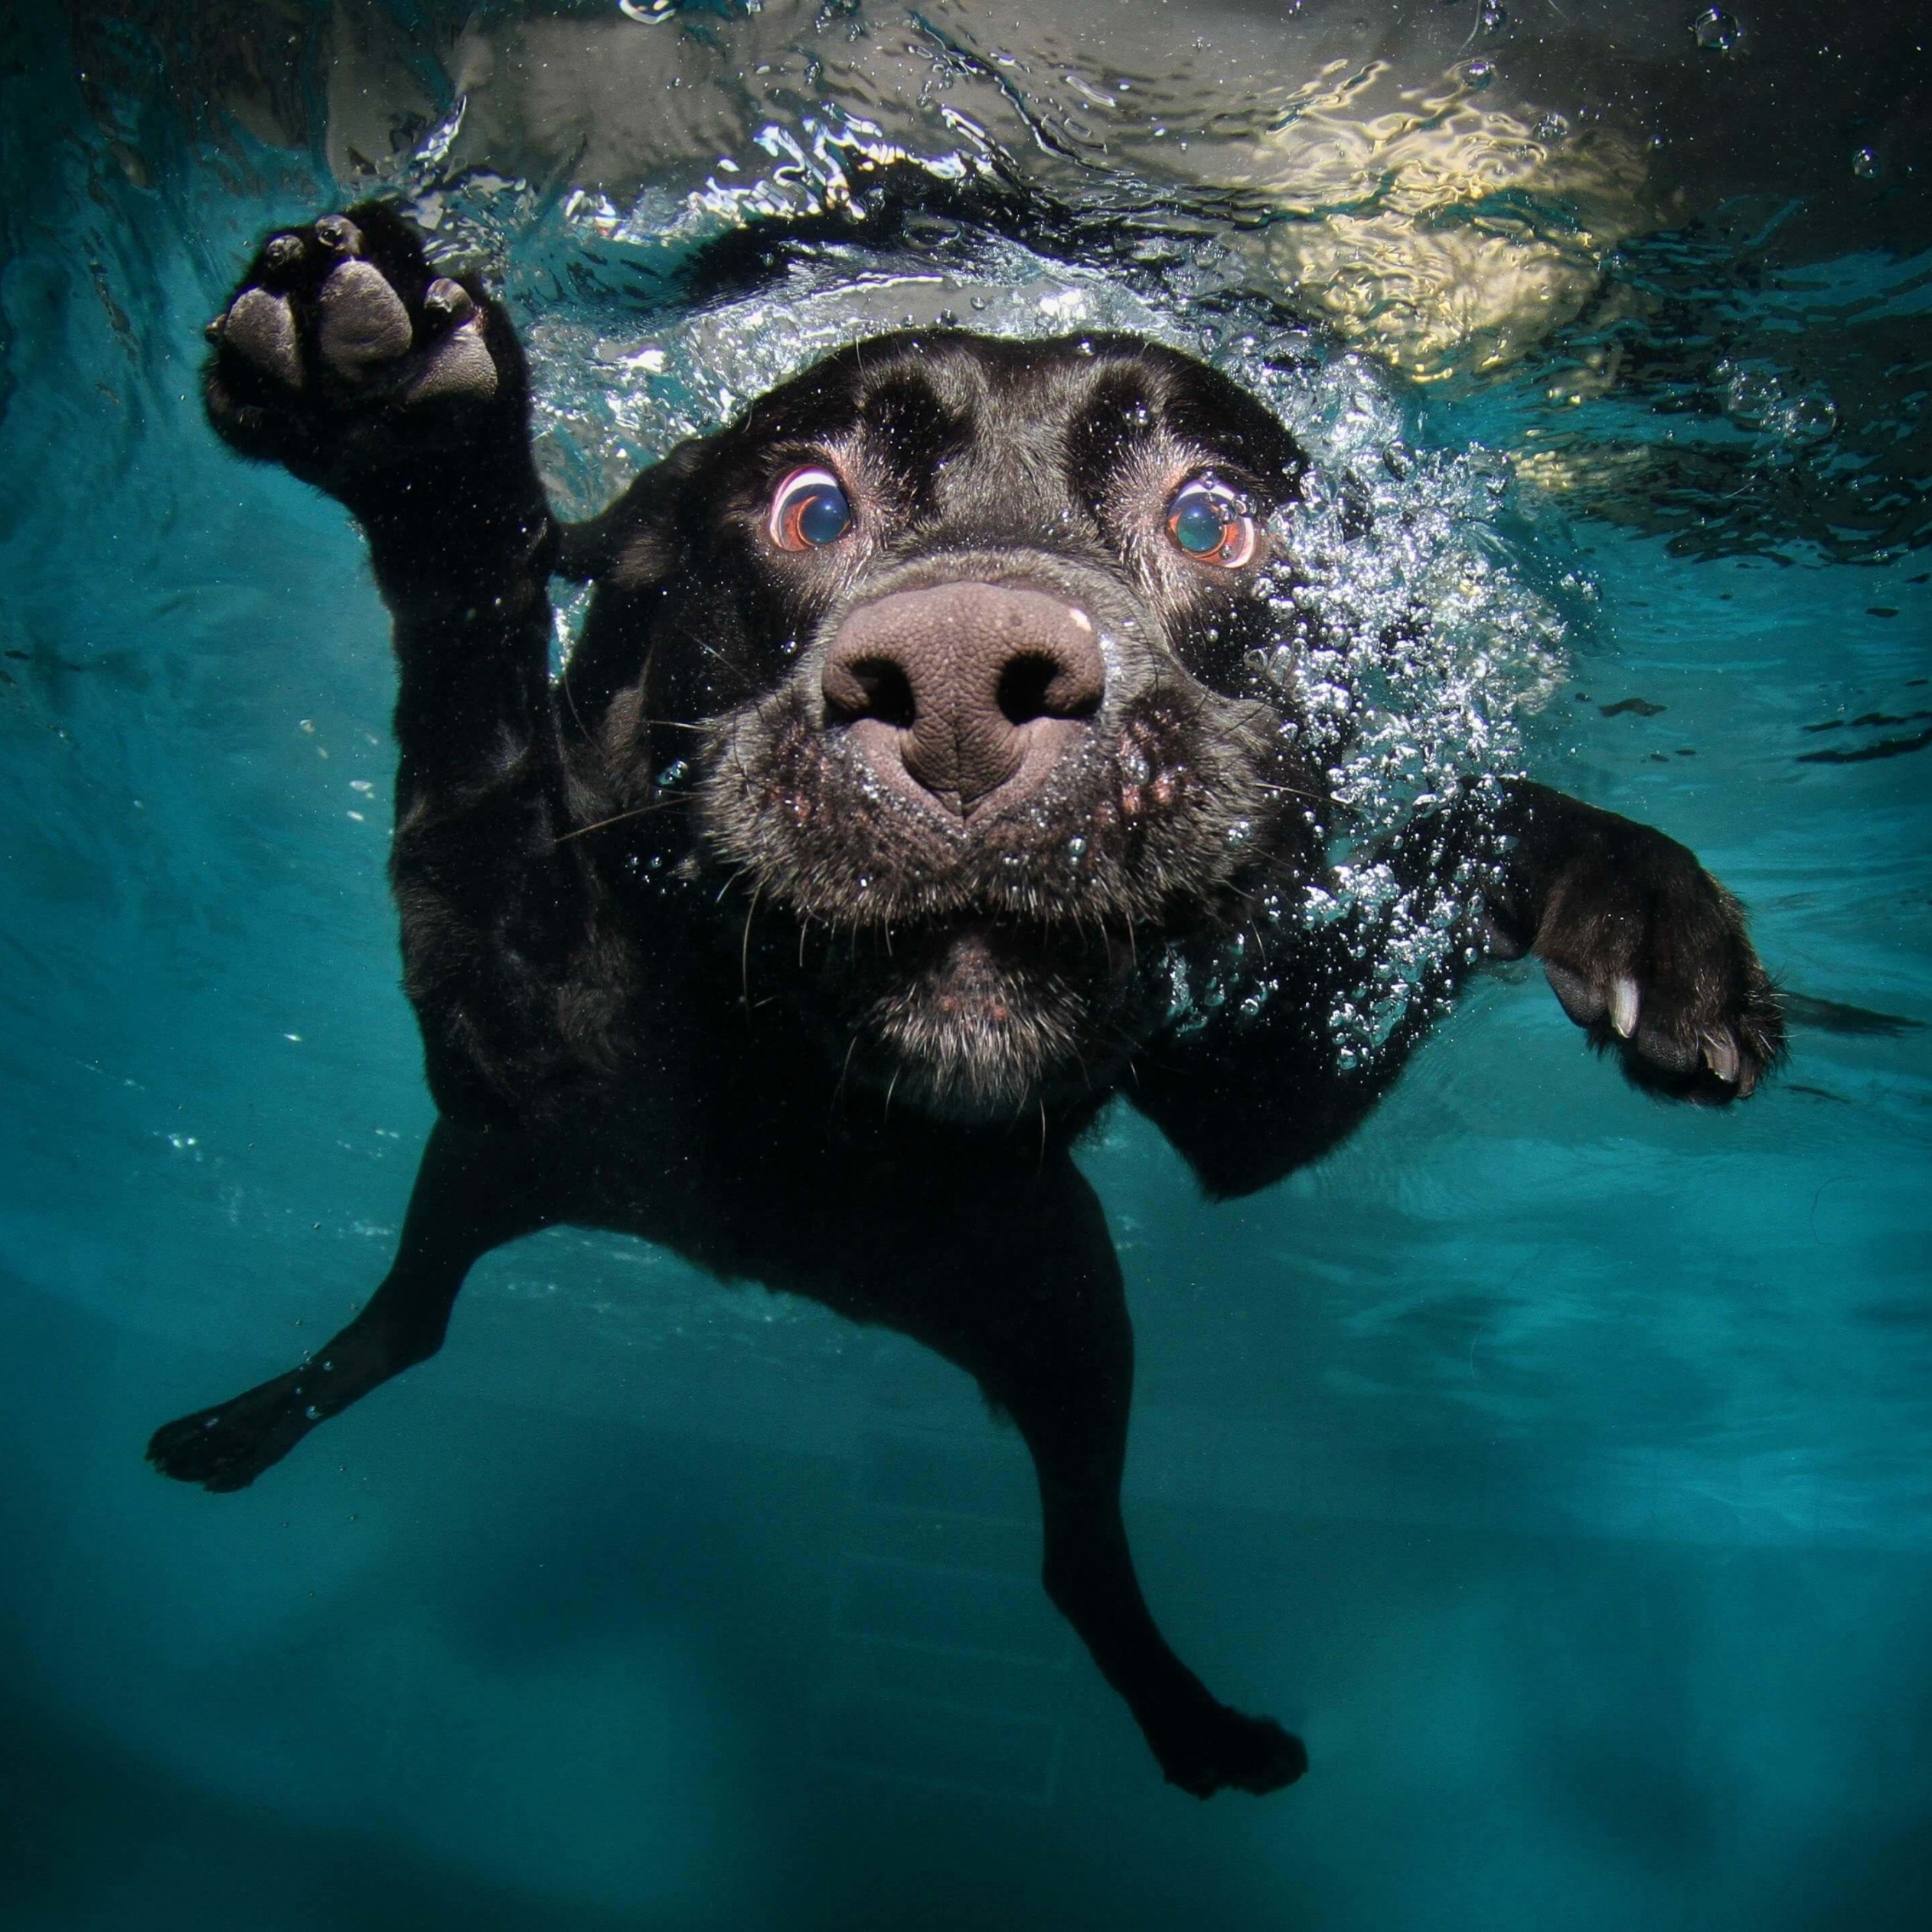 Underwater Dog Wallpaper for Apple iPad 4